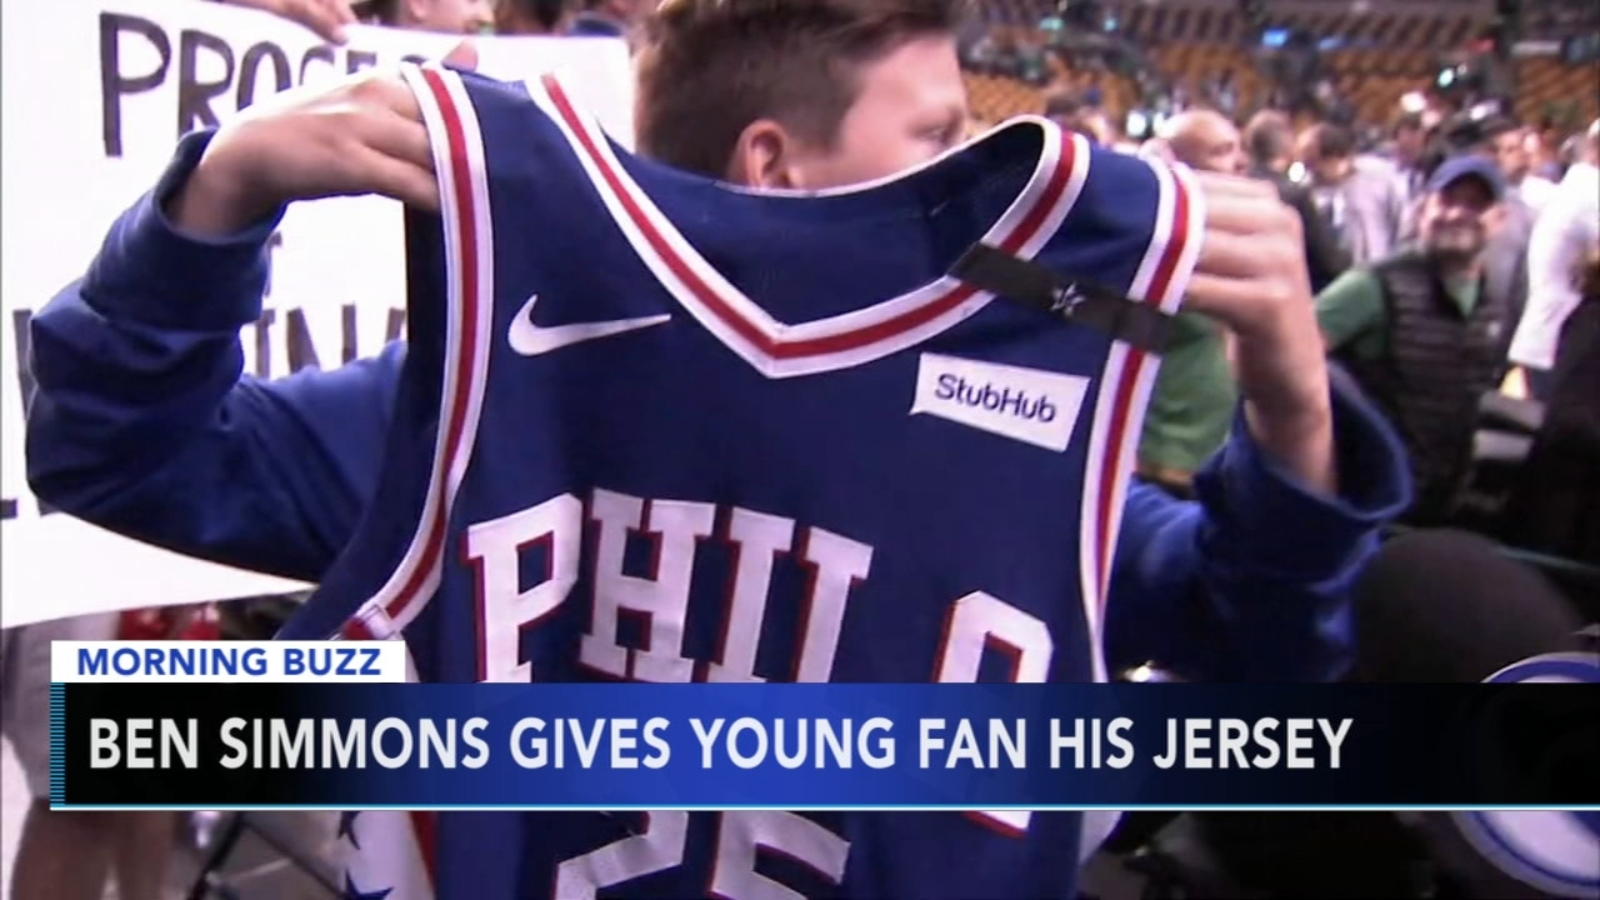 ab39ed909 Philadelphia 76ers forward Ben Simmons gives jersey to young fan after game  against Boston Celtics